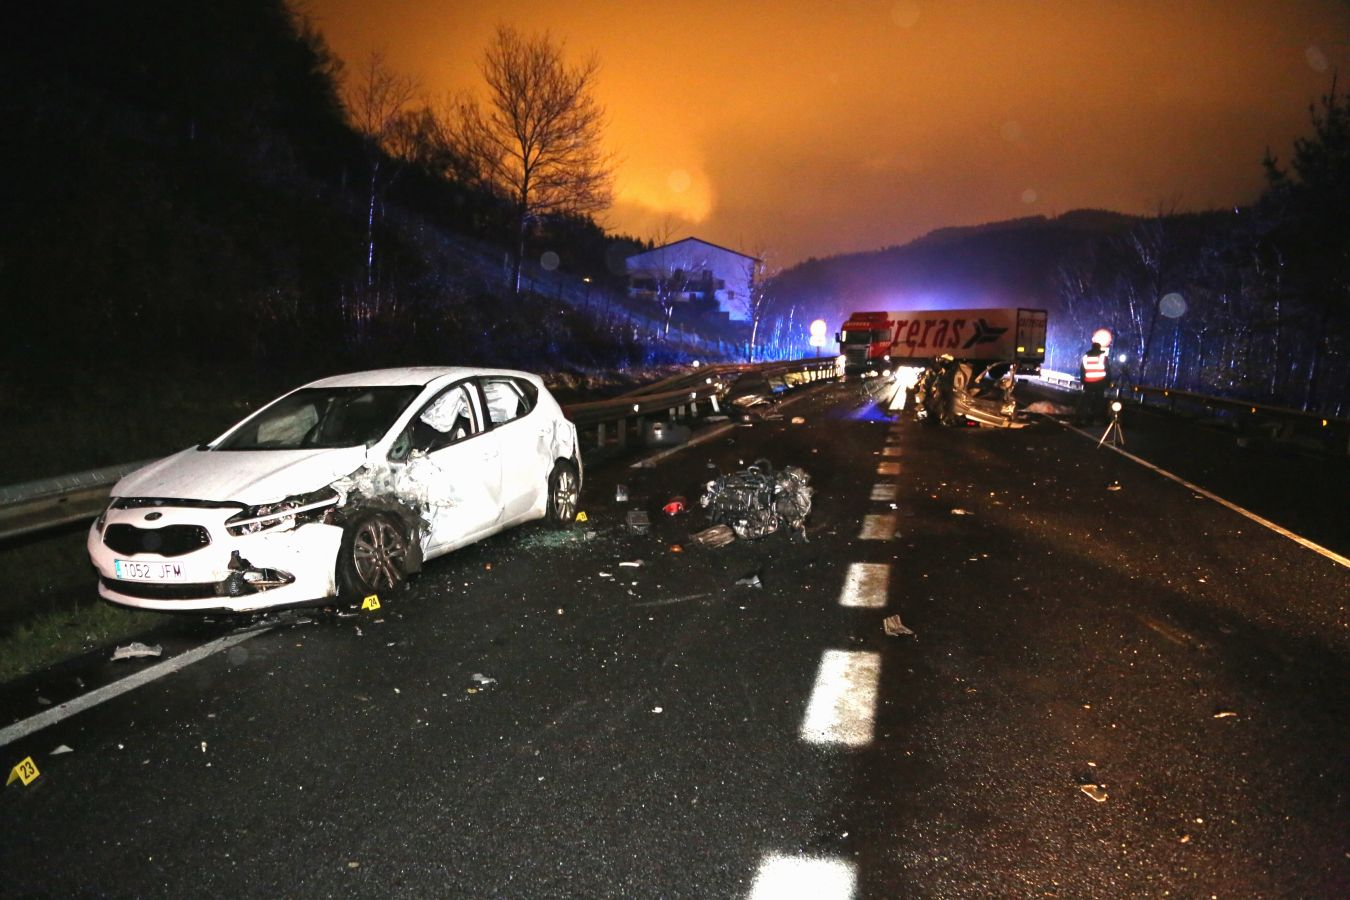 Tres fallecidos en un accidente en Azkoitia